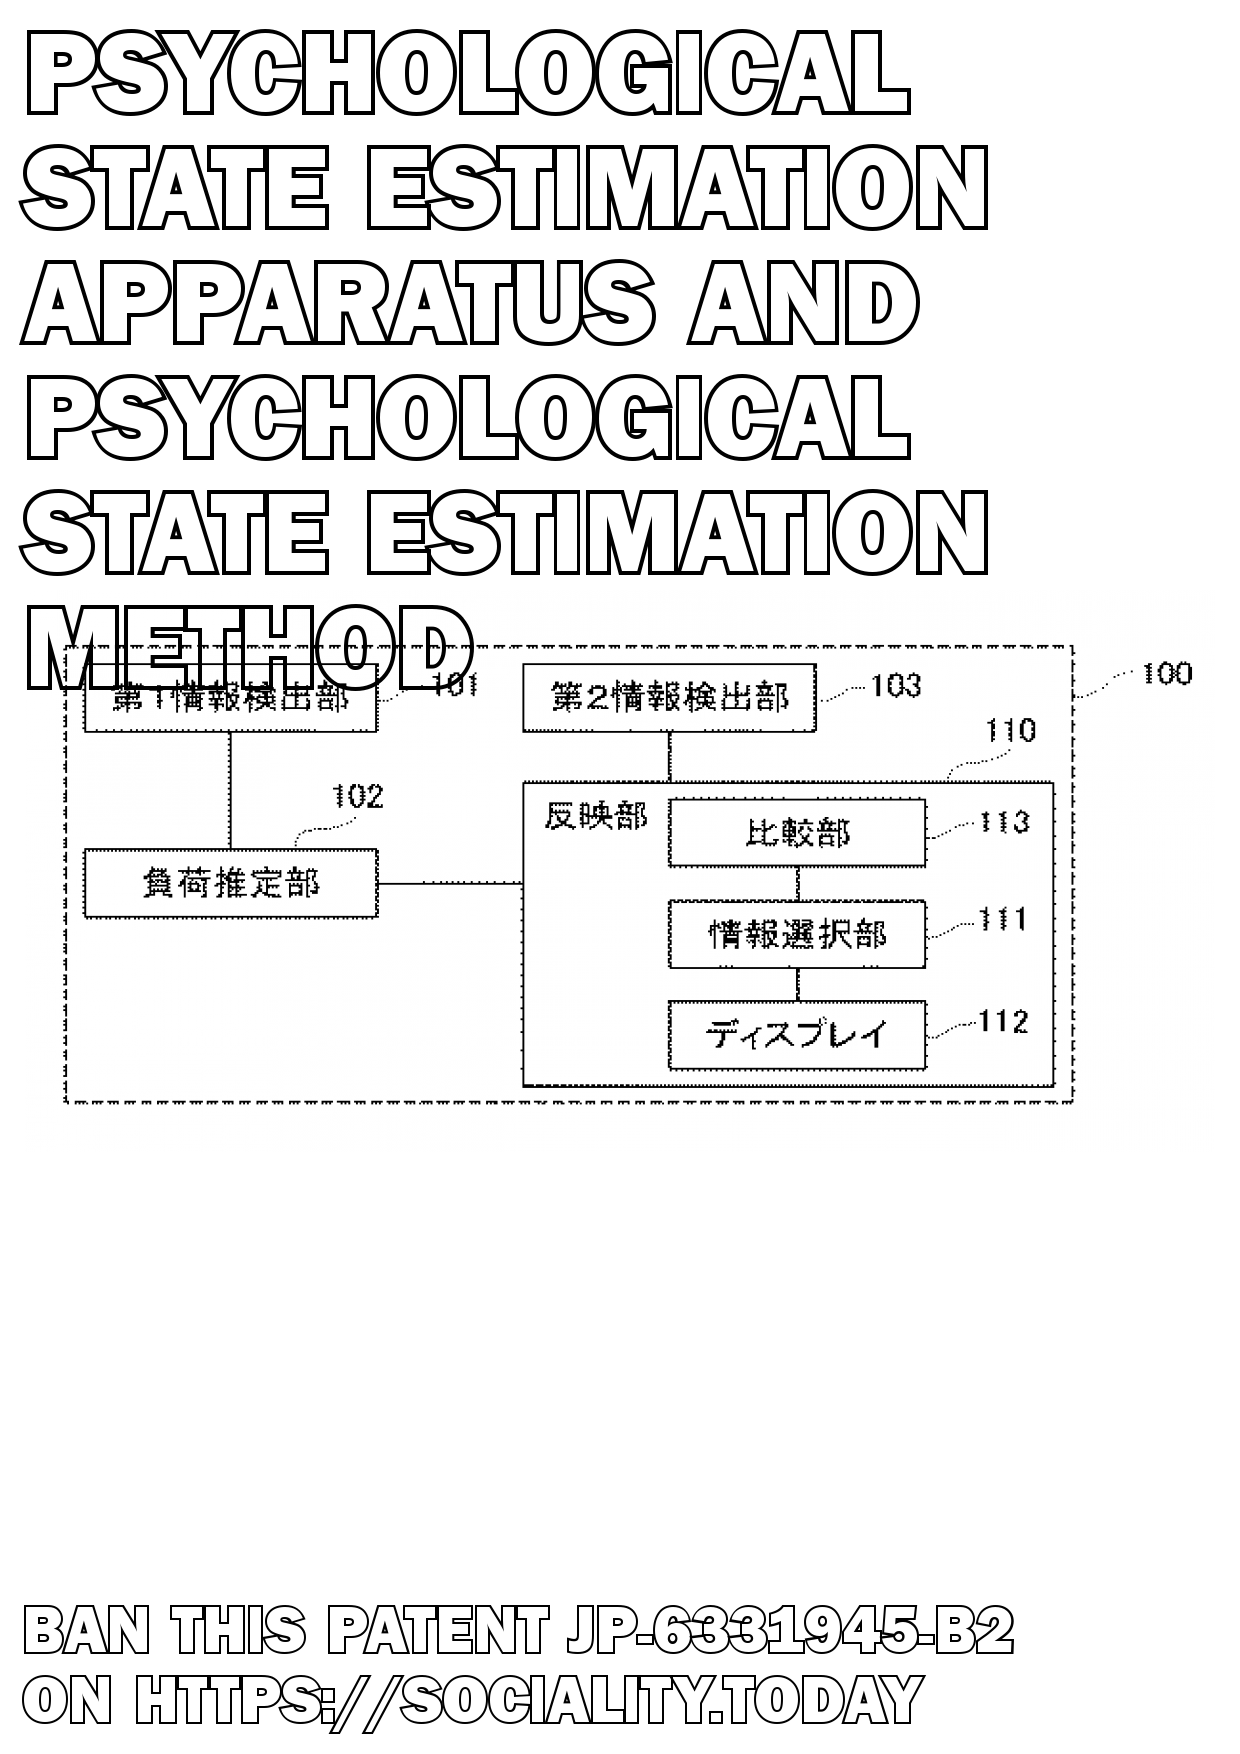 Psychological state estimation apparatus and psychological state estimation method  - JP-6331945-B2